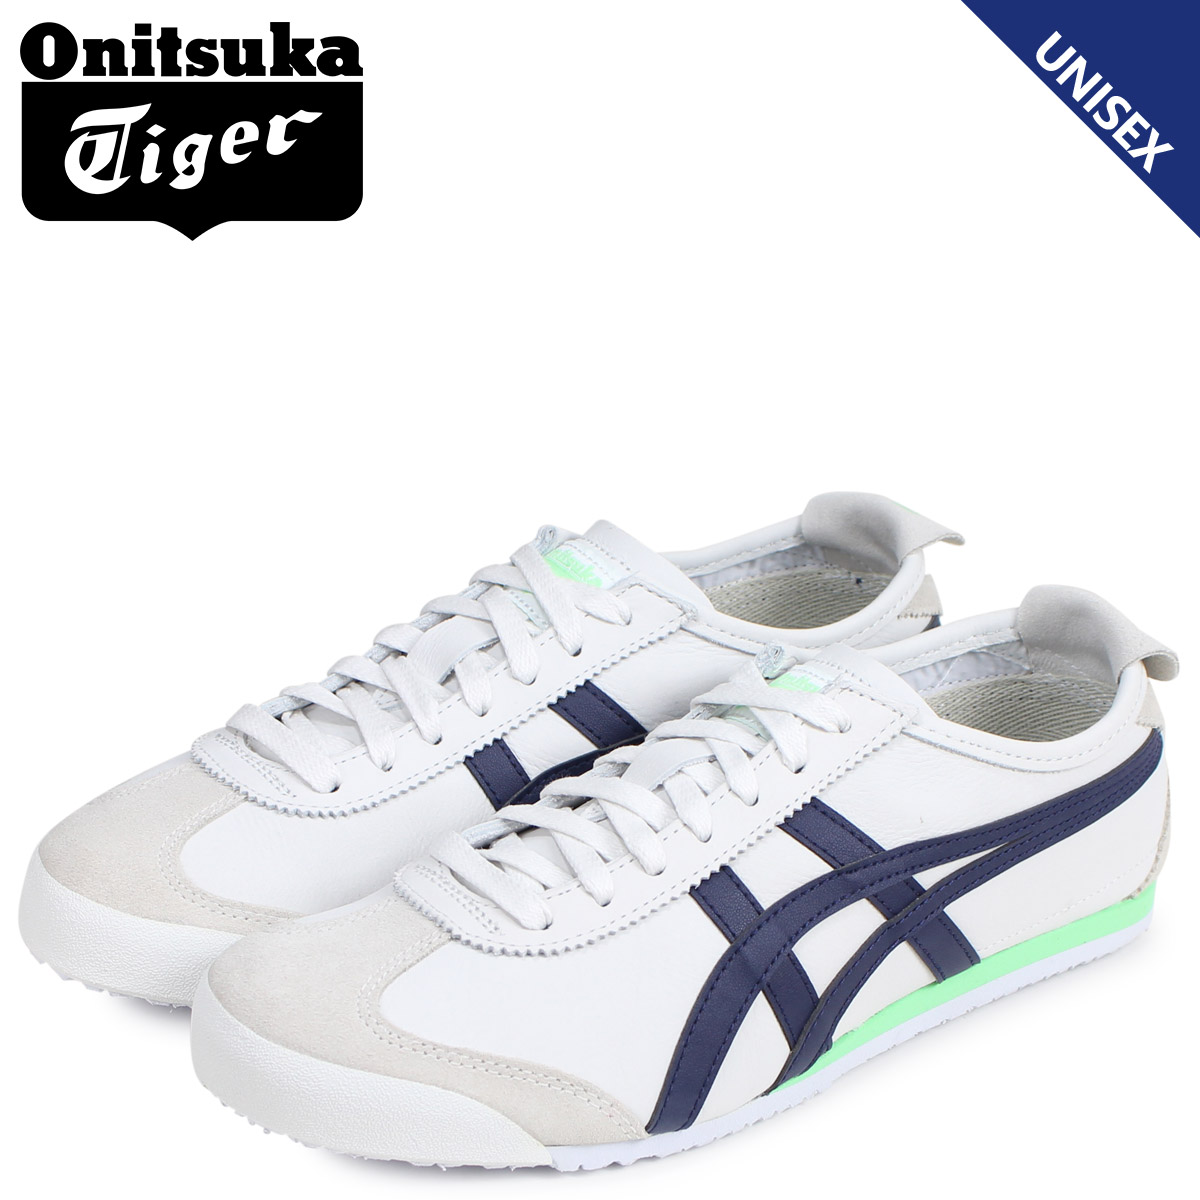 huge selection of d745a 28193 Onitsuka tiger Onitsuka Tiger Mexico 66 sneakers men gap Dis MEXICO 66  white white 1183A359-101